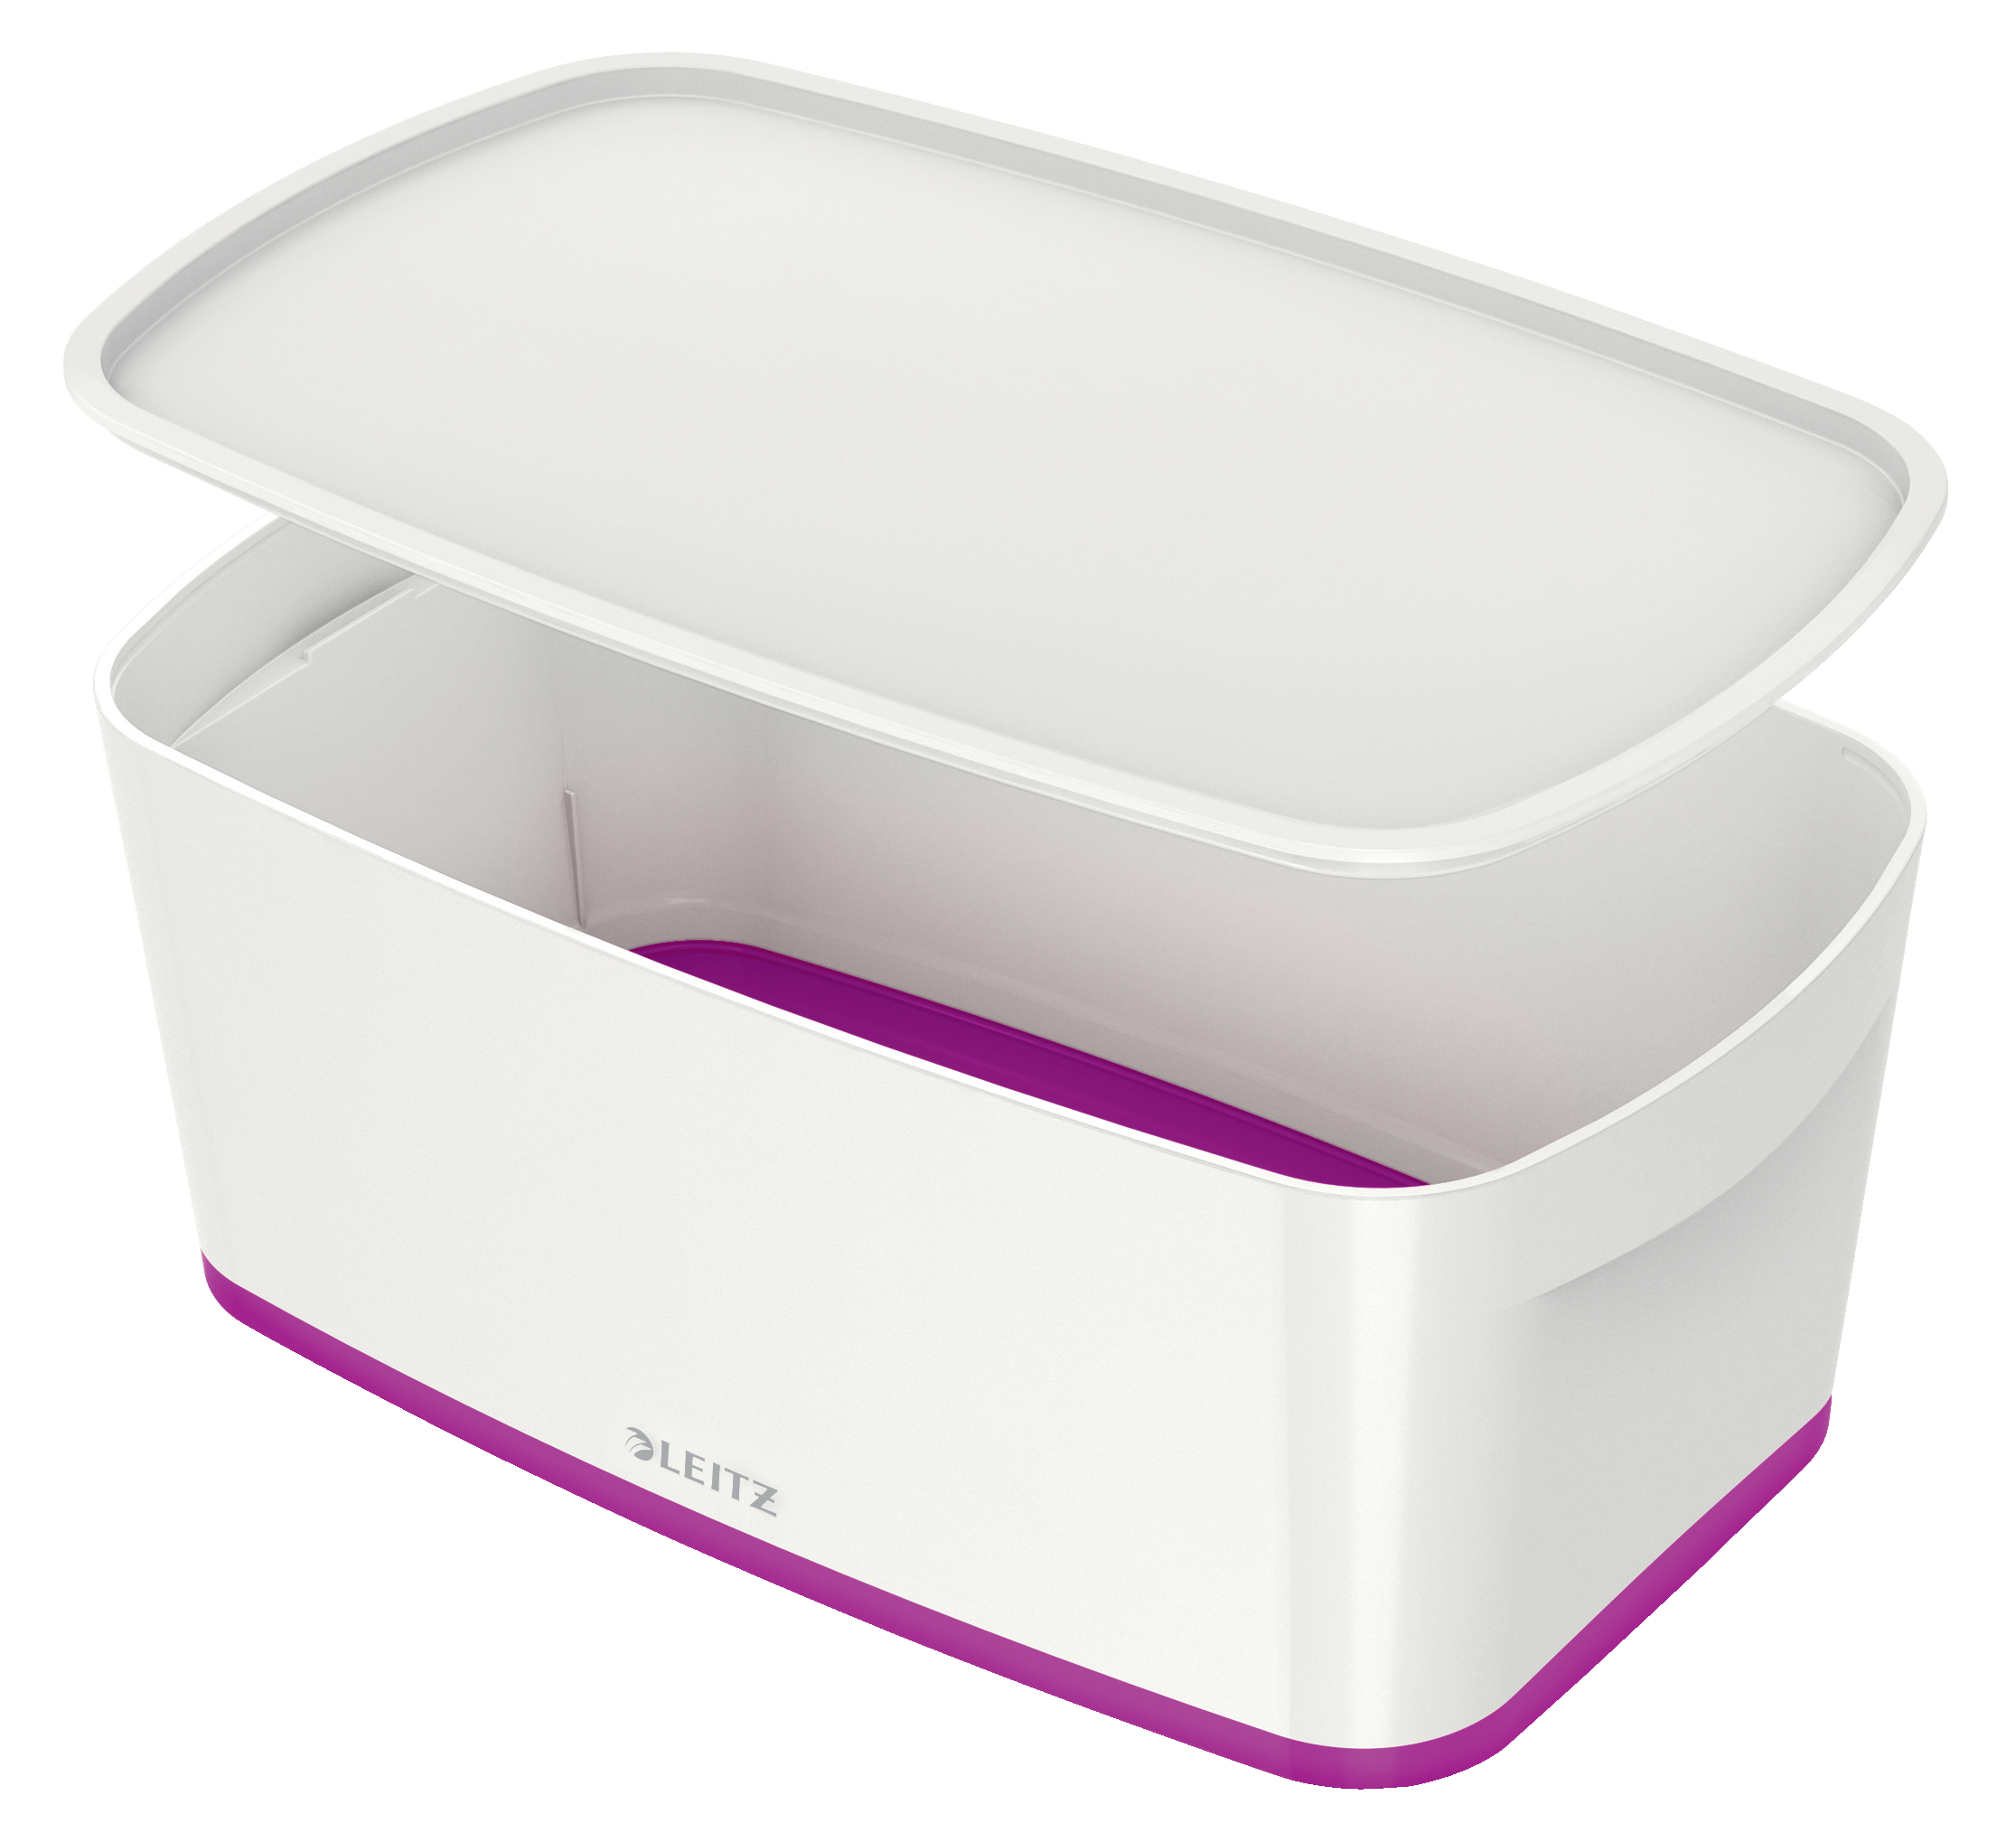 Tool Boxes Leitz MyBox Small with Lid WOW White Purple